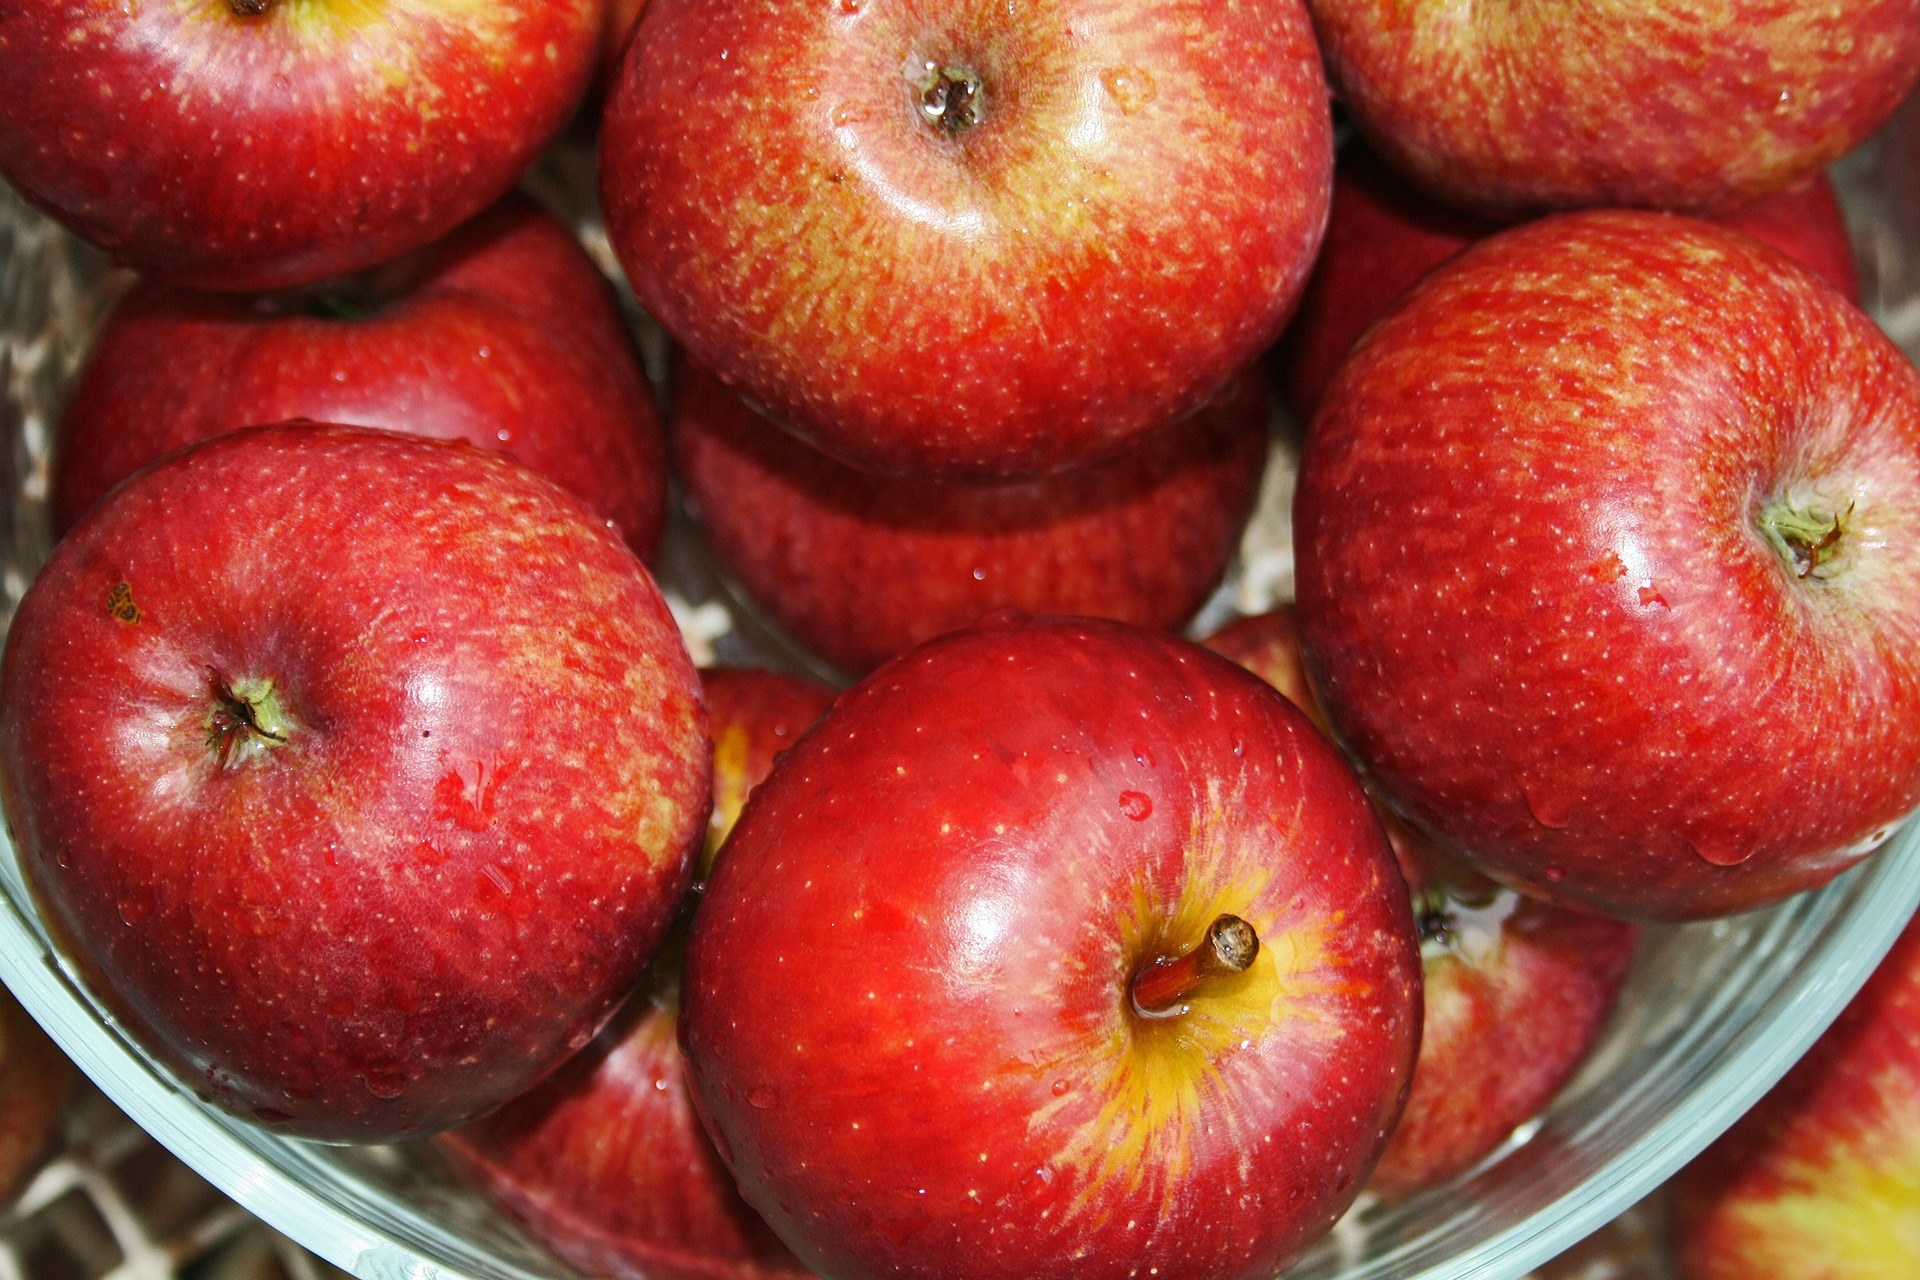 bowl-of-apples-2283904_1920.jpg